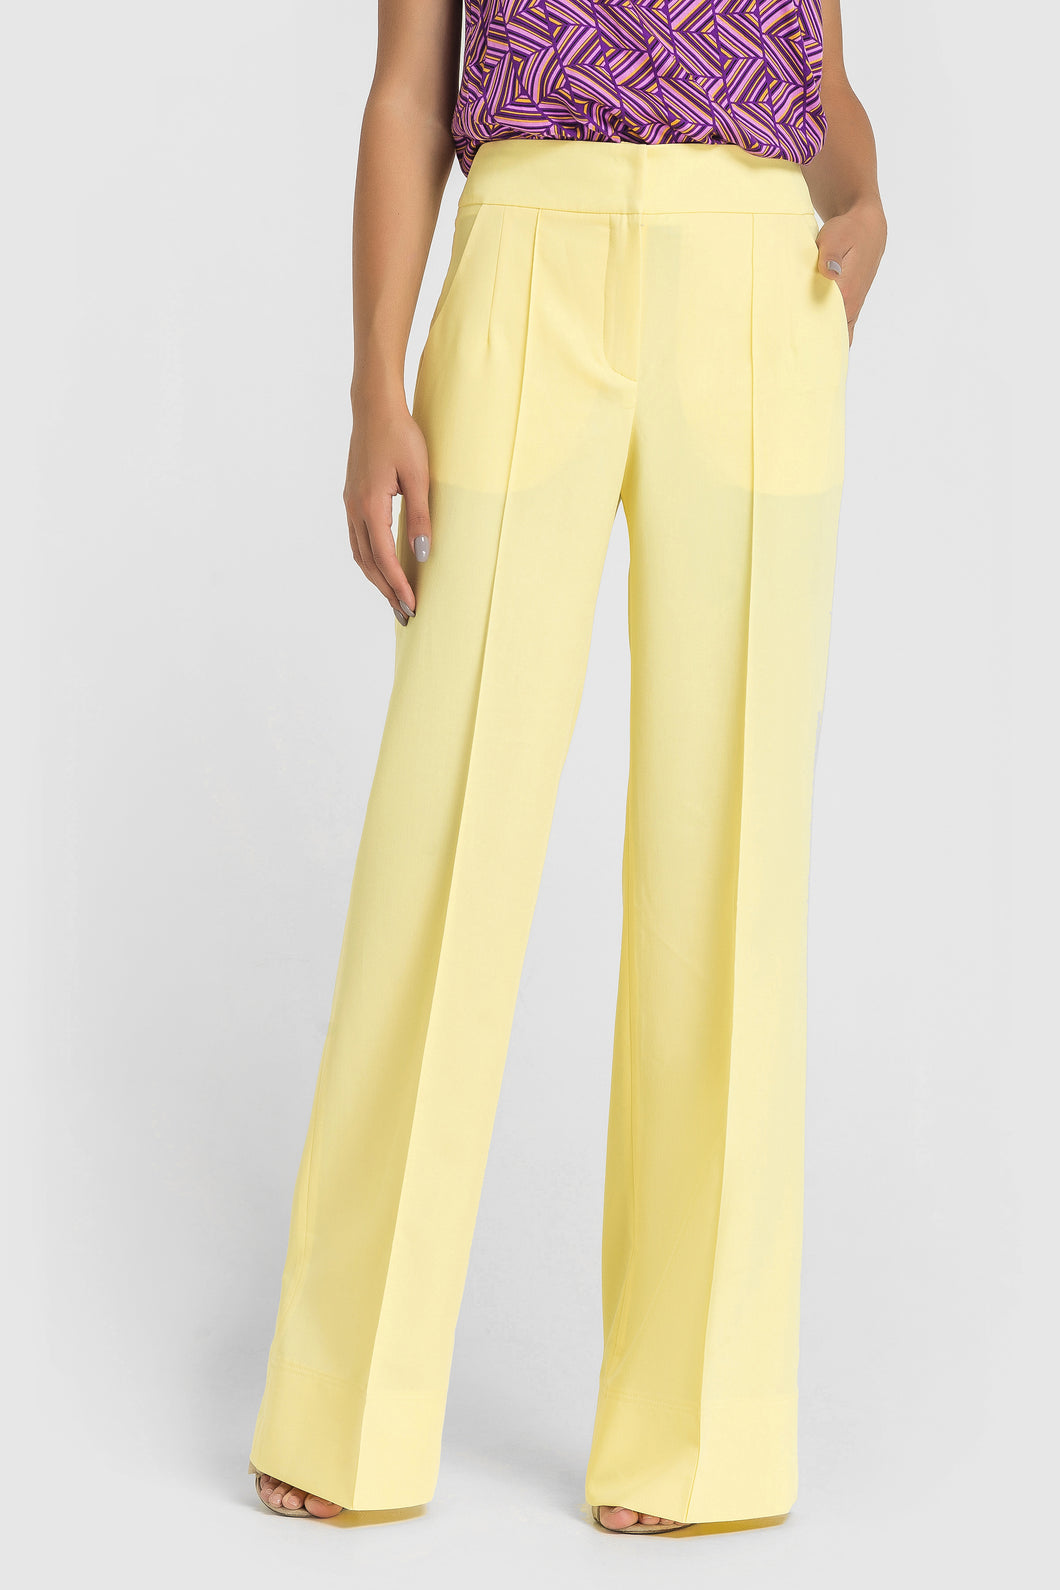 Yellow Wide leg Palazzo Pants